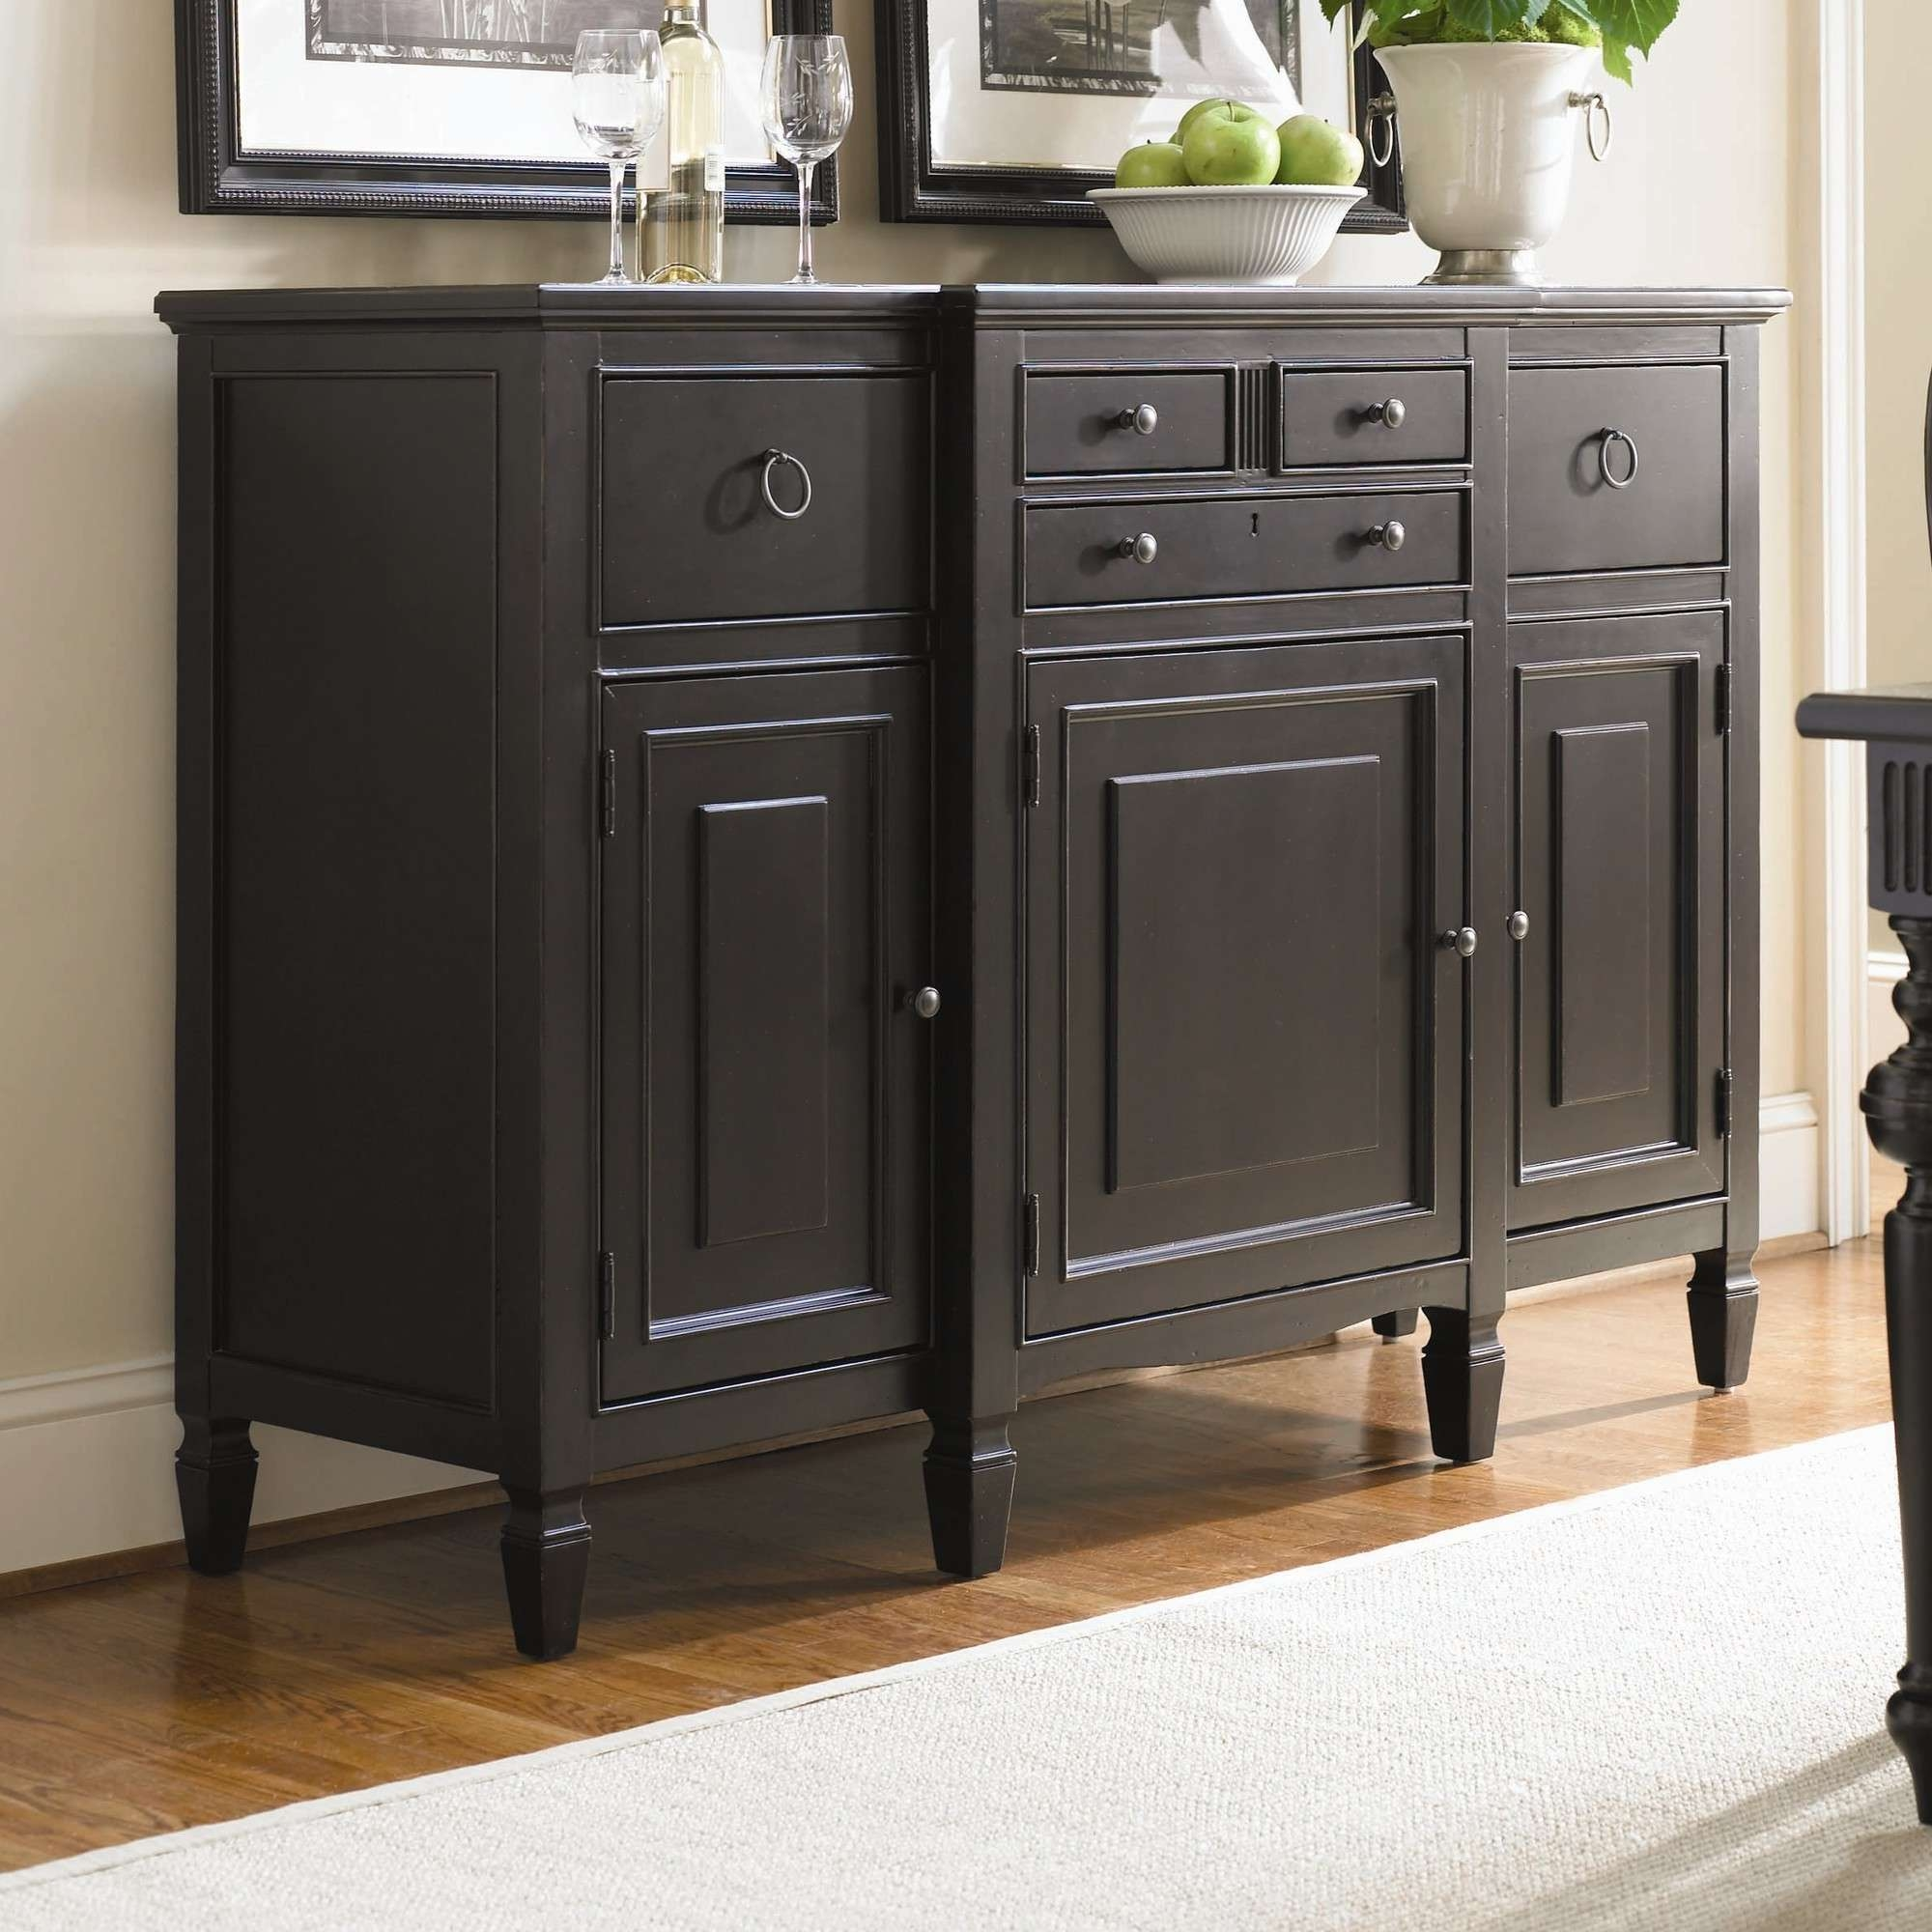 Furniture: Antique Dark Sideboard Buffet With Three Drawers On Within Dining Room Sideboards And Buffets (View 8 of 20)